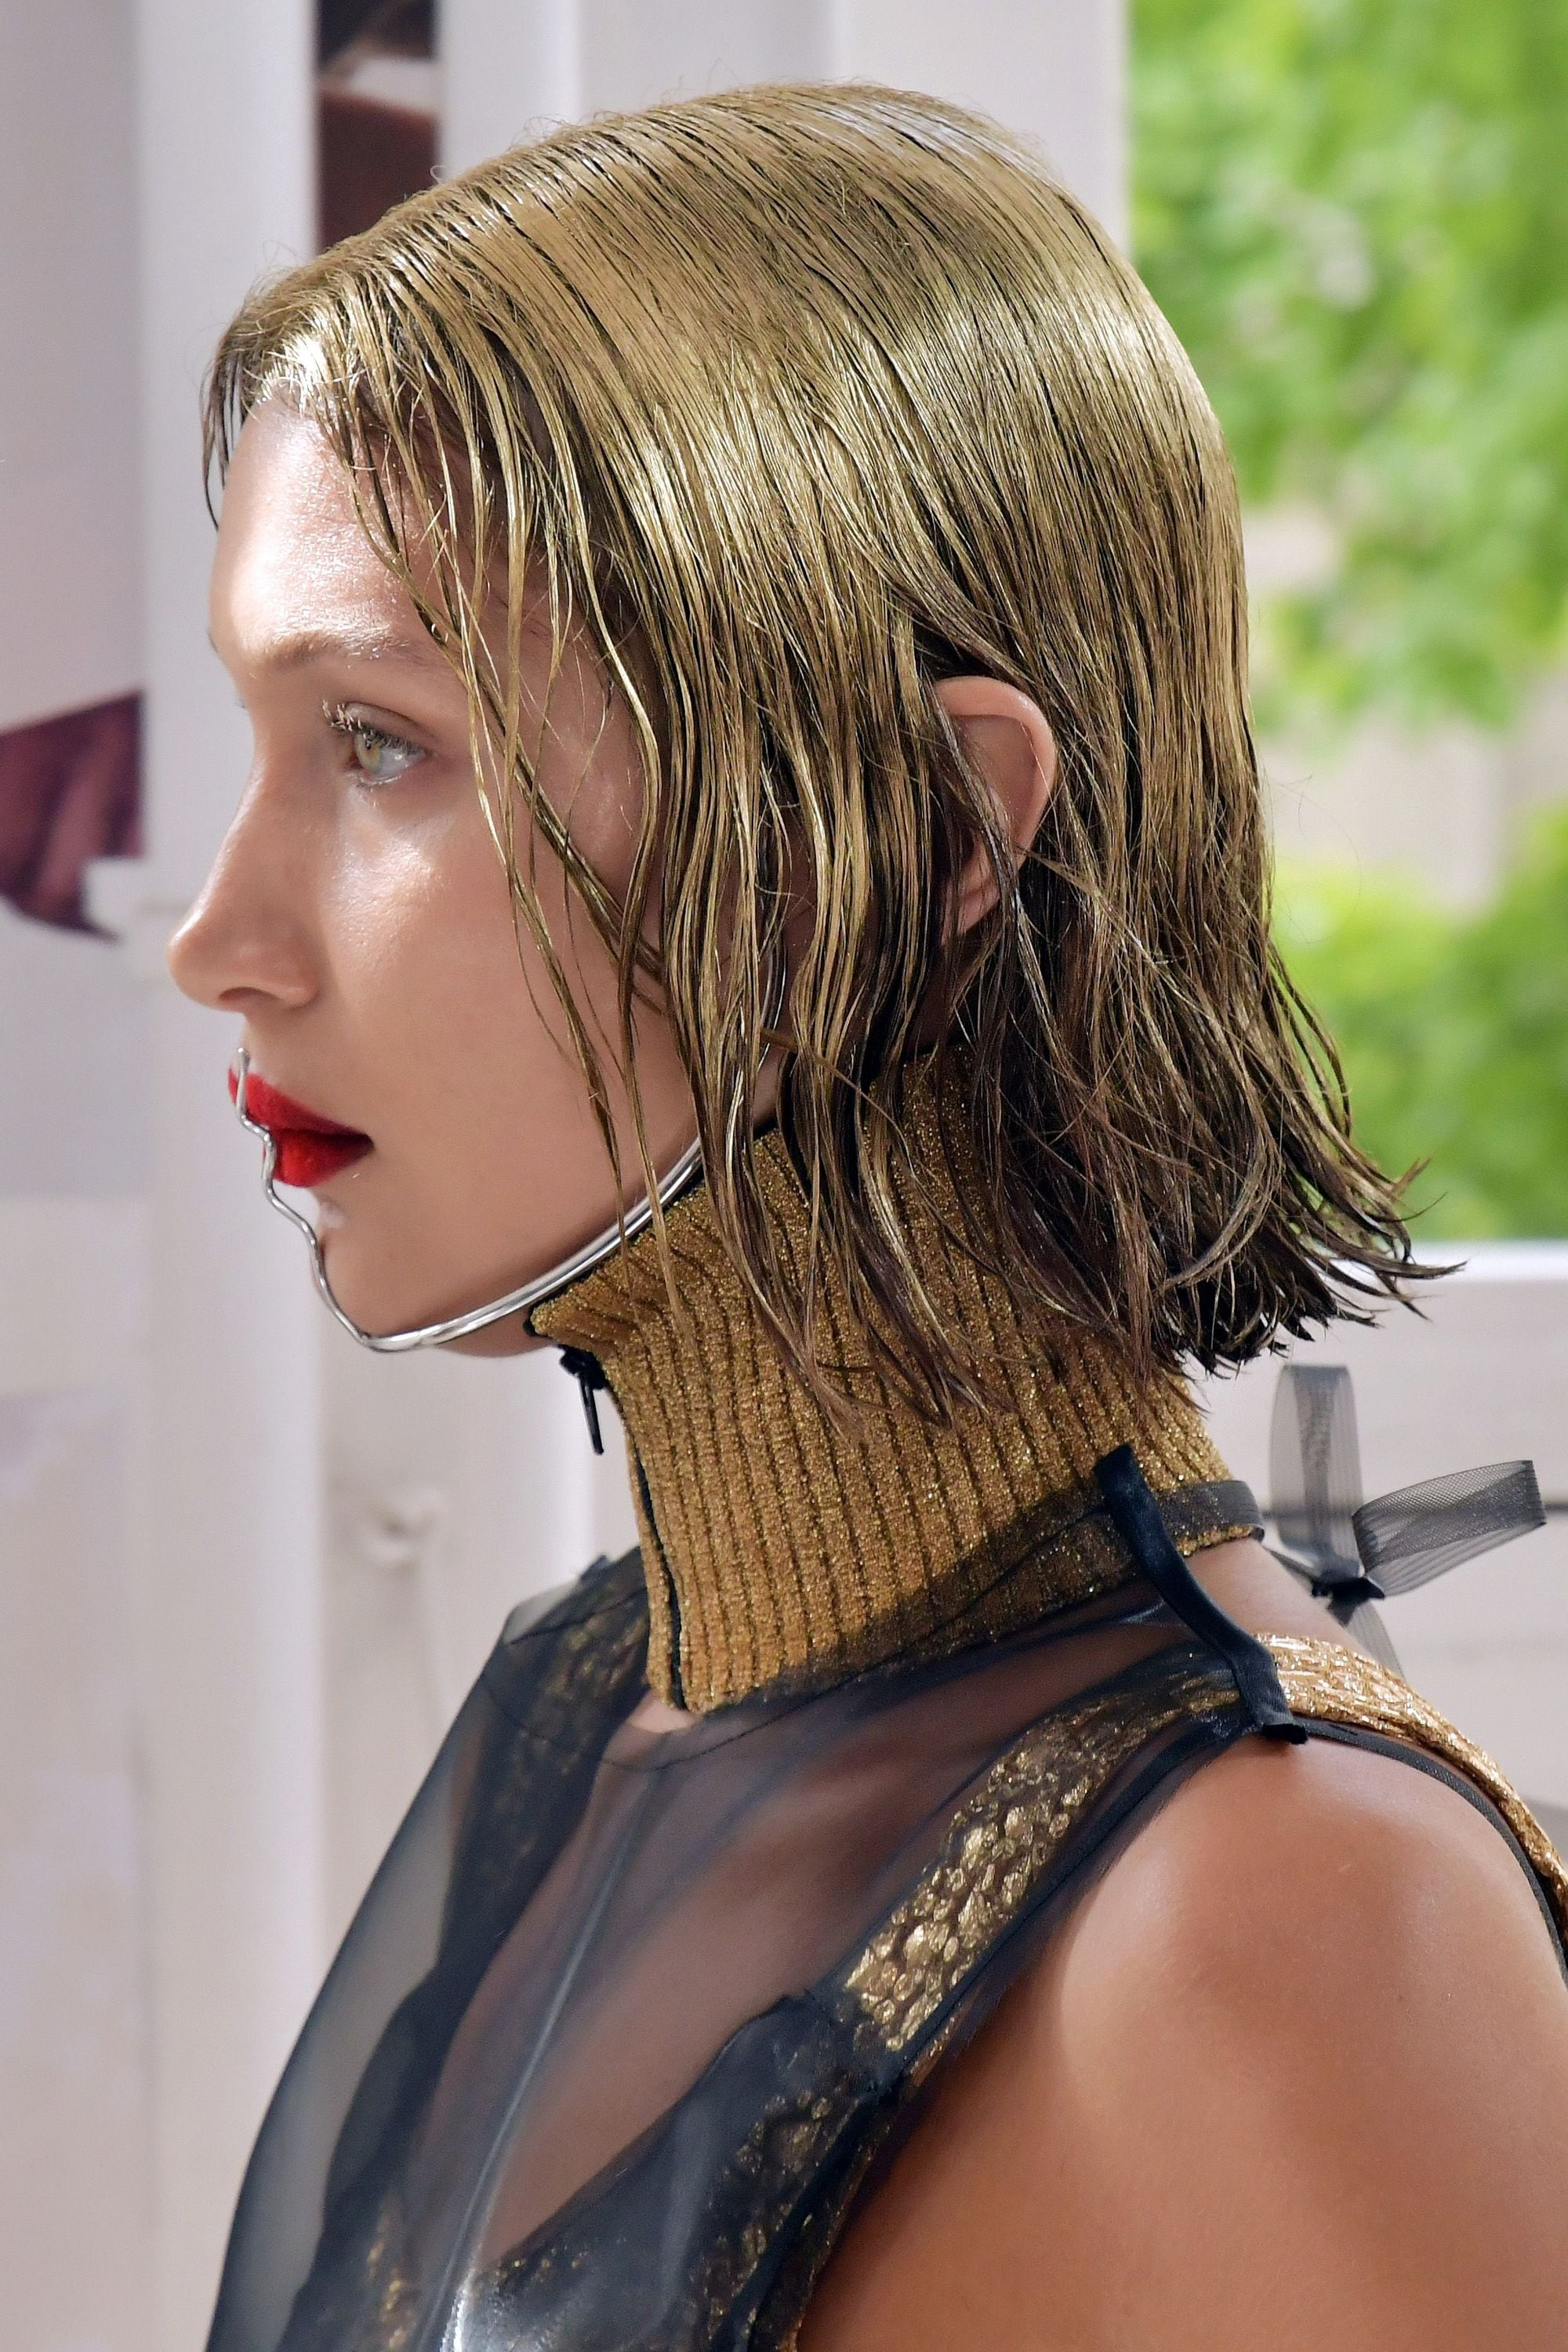 Bella hadid on the Maison Margiela runway with spray painted golden hair with red lips and black outfit